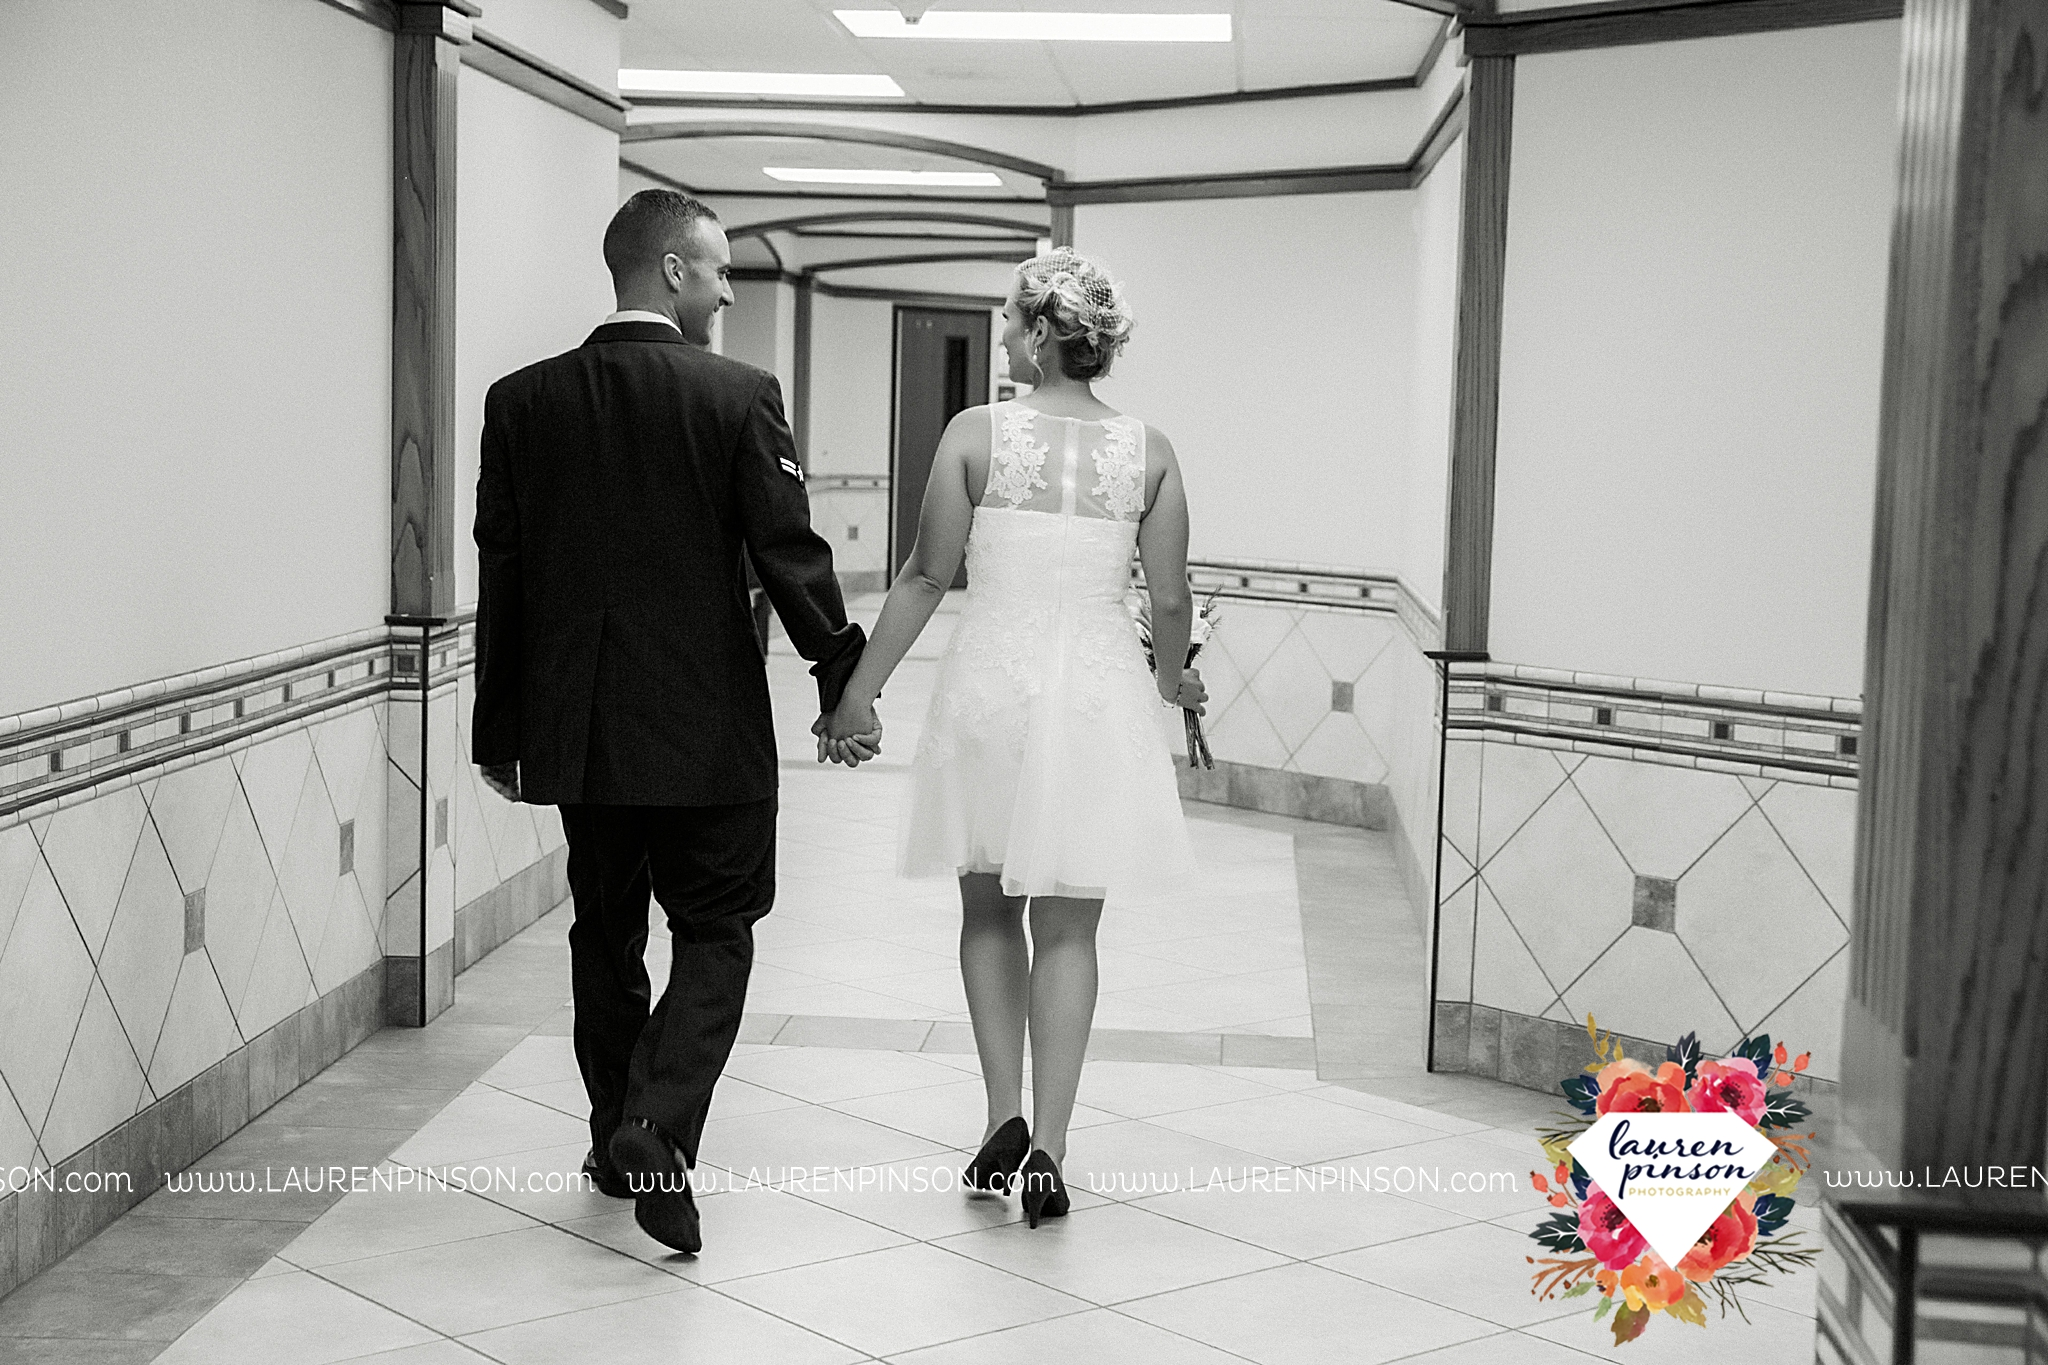 sheppard-afb-wichita-falls-texas-elopement-courthouse-wedding-photographer-justice-of-the-peace-judge-little-ceremony_3272.jpg